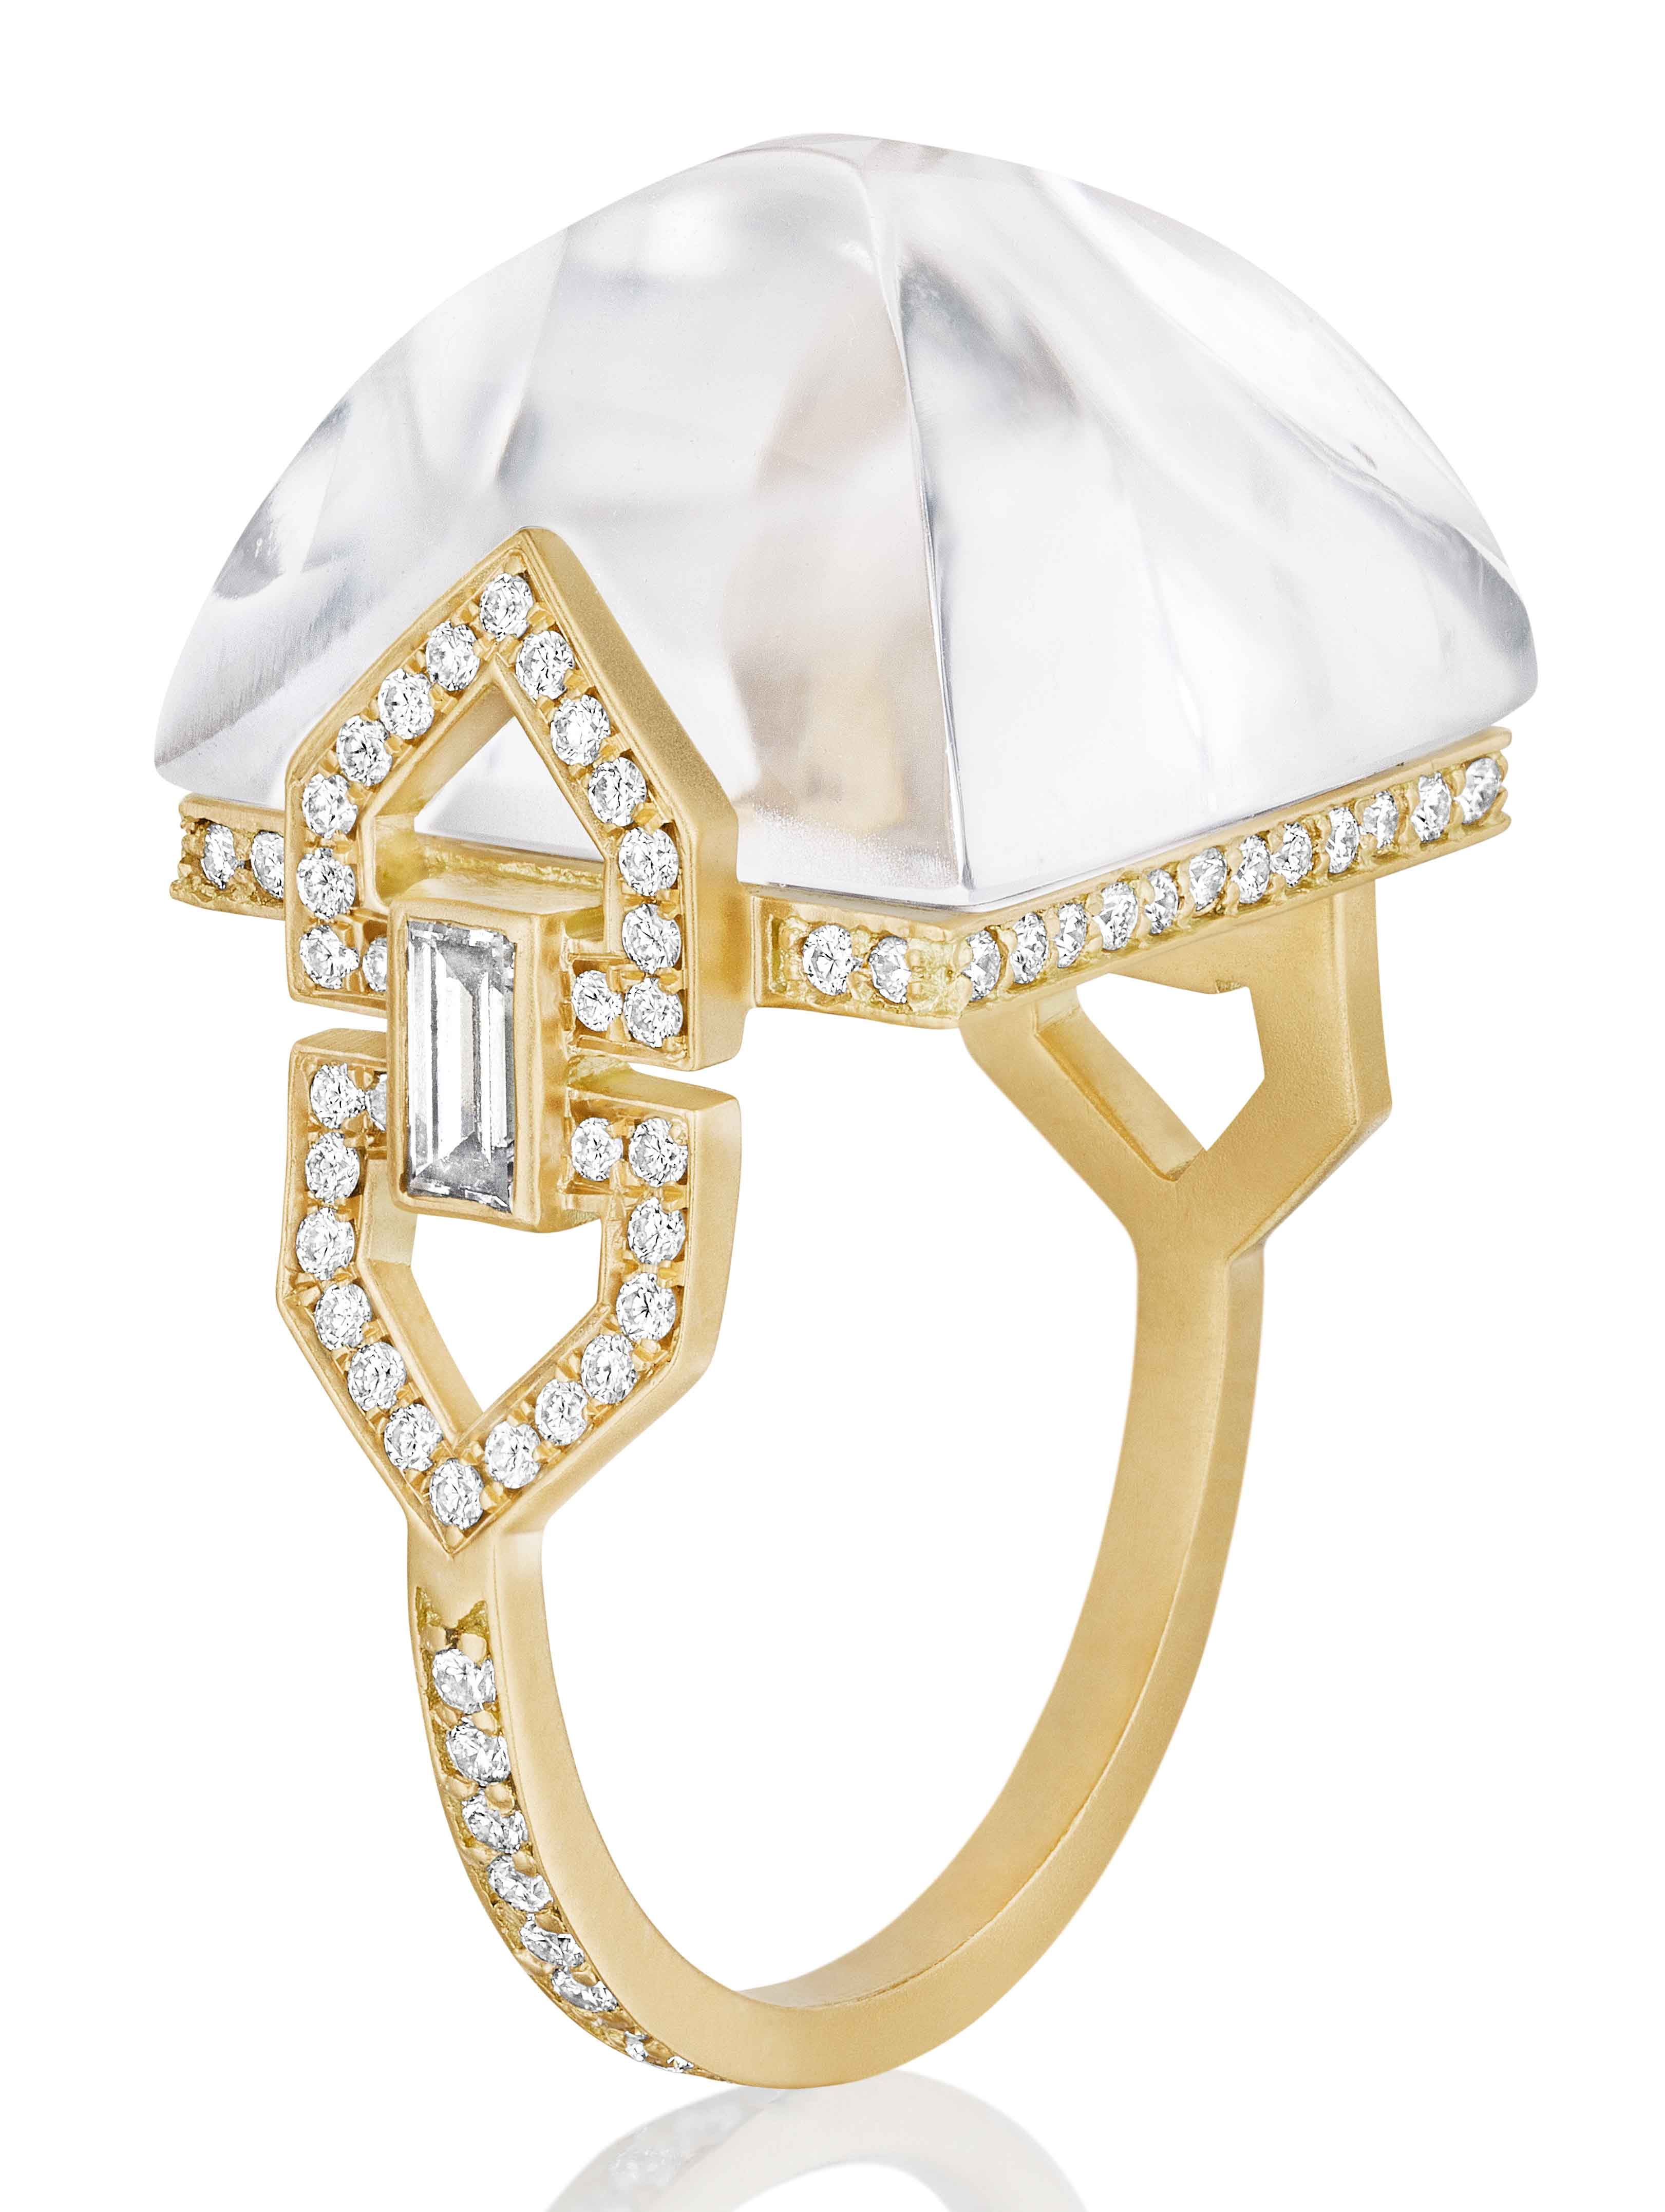 Yellow Gold Ring with Sugar Loaf–Cut Rock Crystal